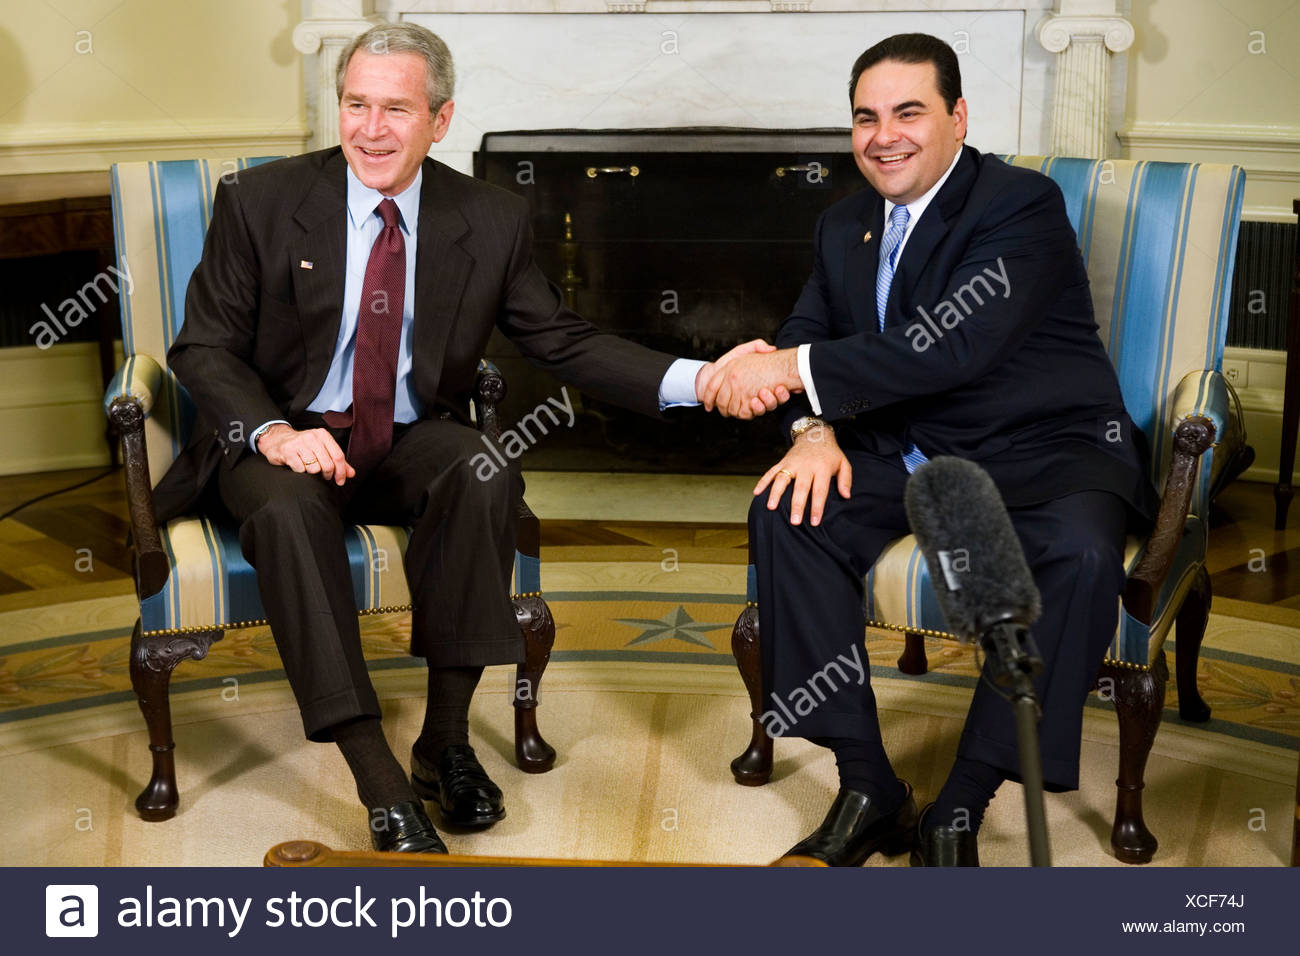 President Bush meets with Tony Saca President of El Salvador in the Oval Office - Stock Image